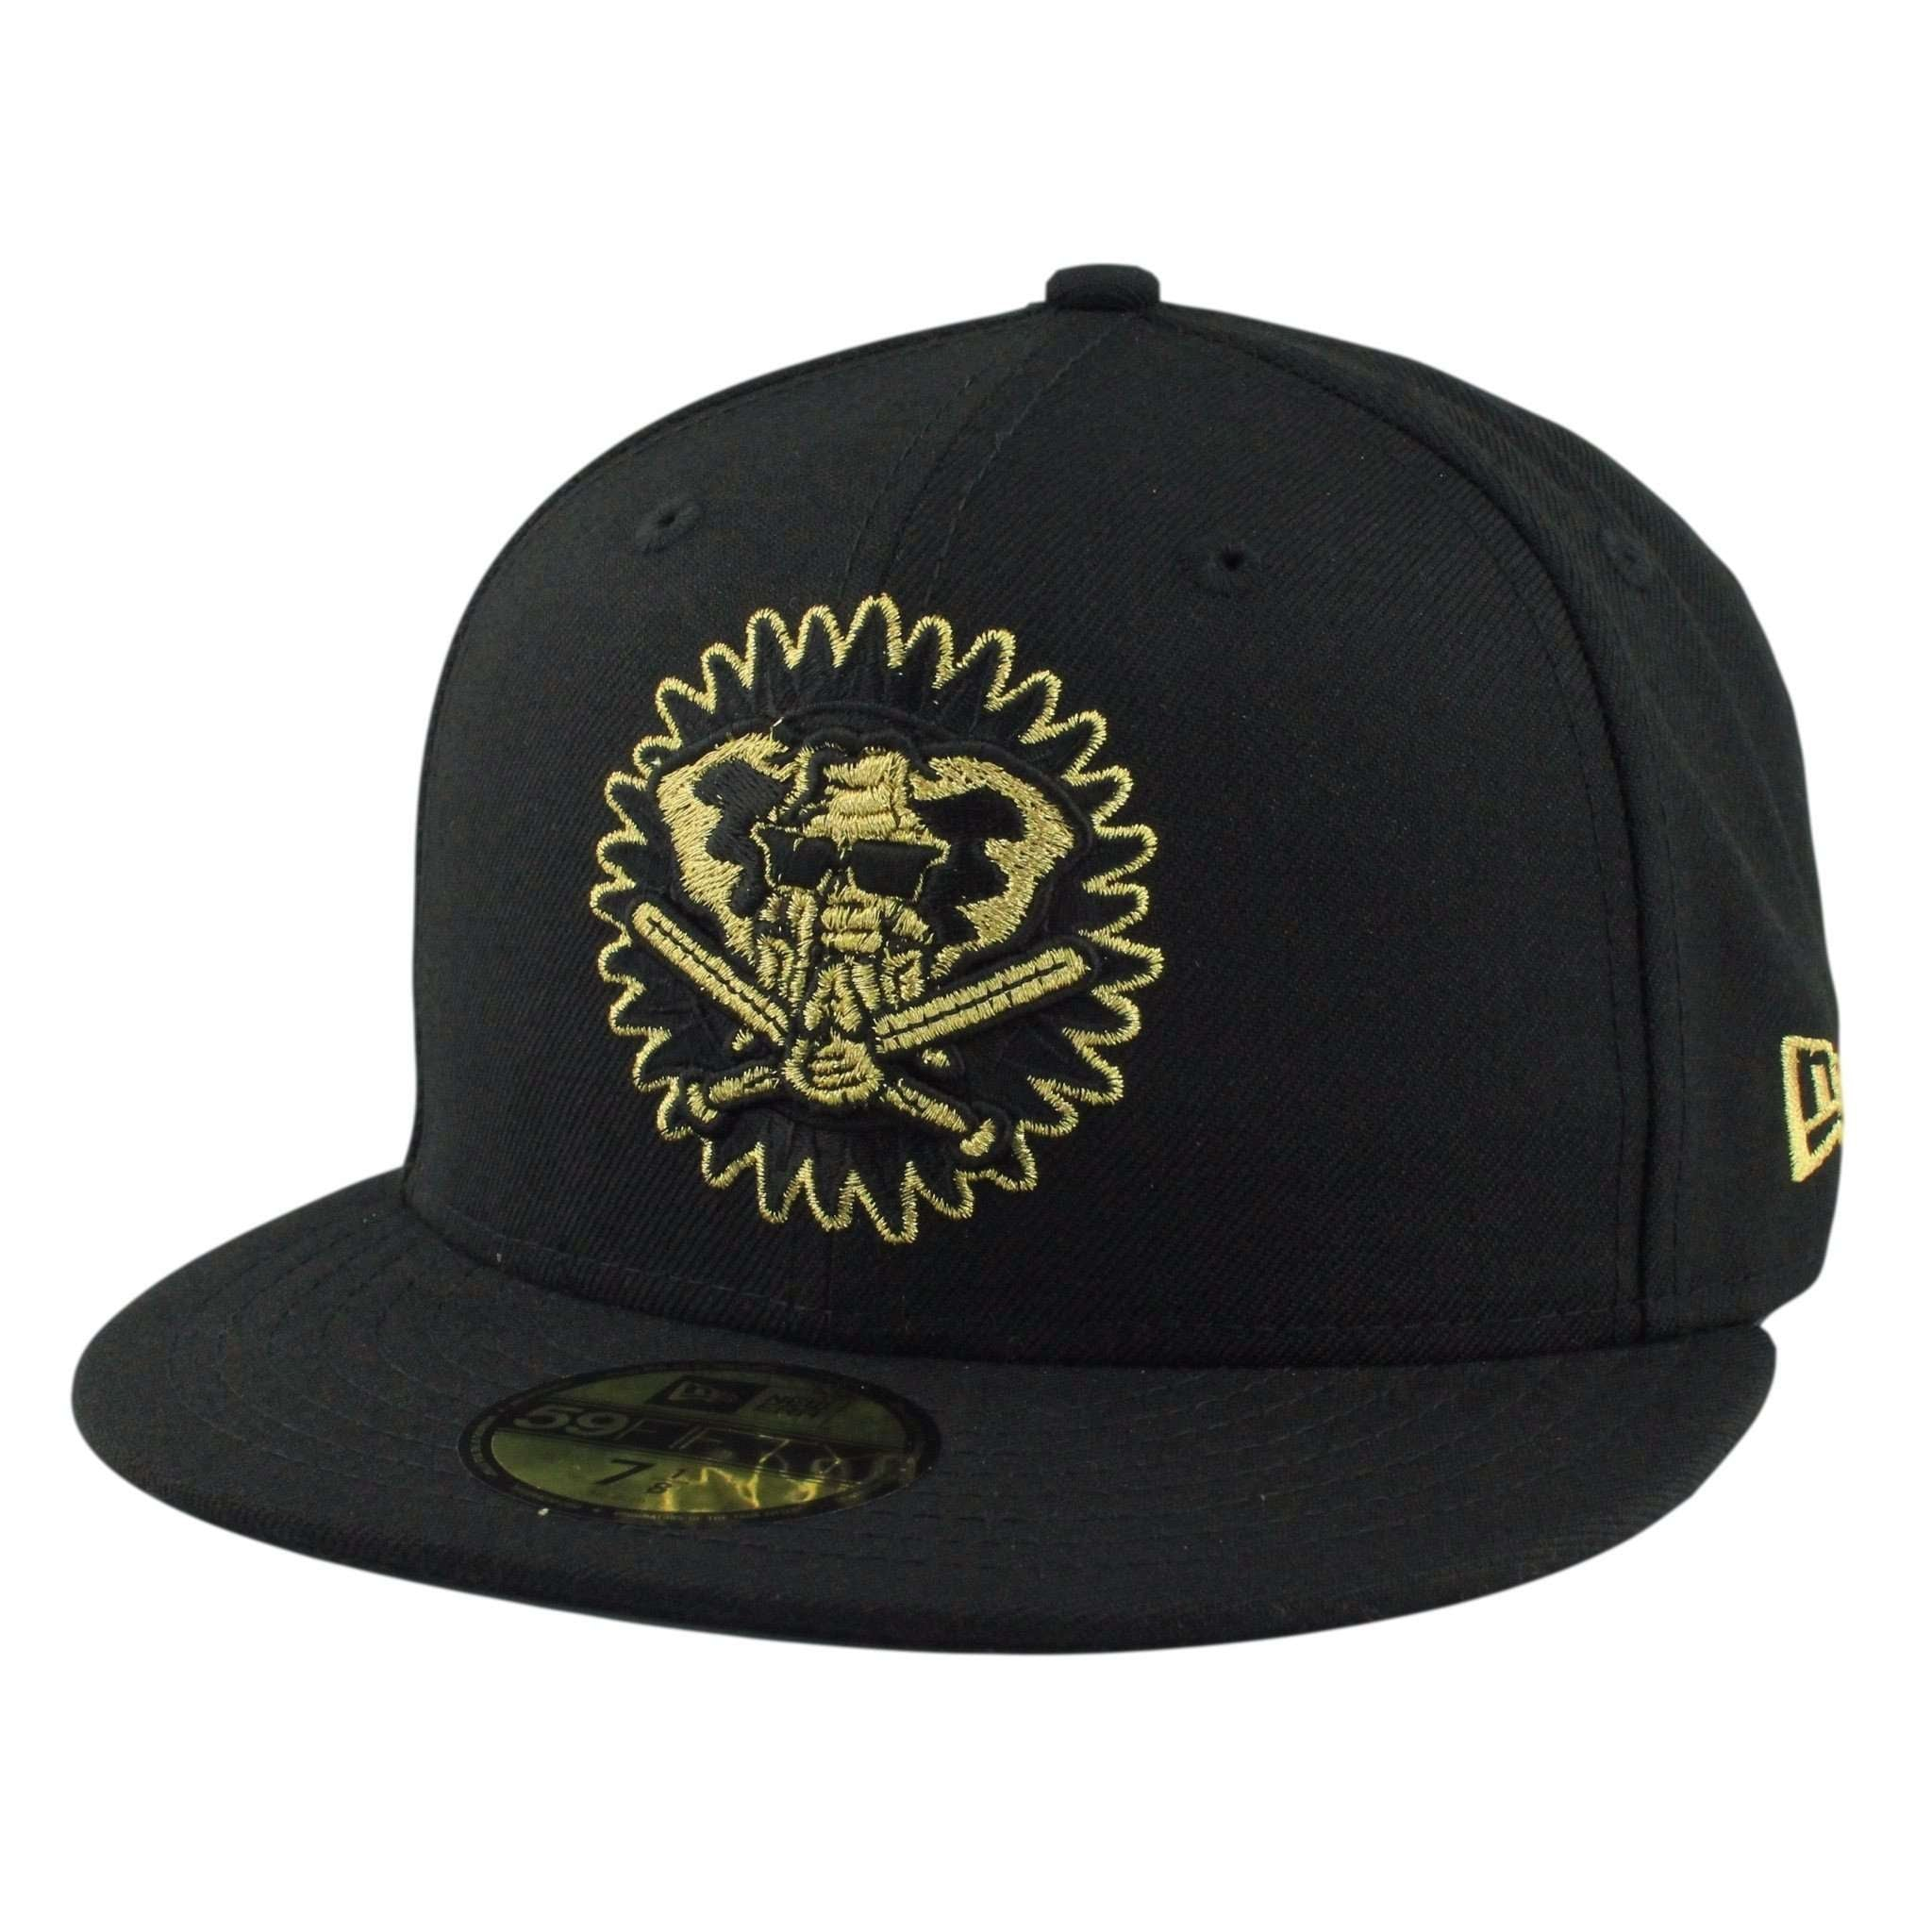 new styles 8e9c9 2a896 Oakland A s Gold Elephant Black Black Fitted